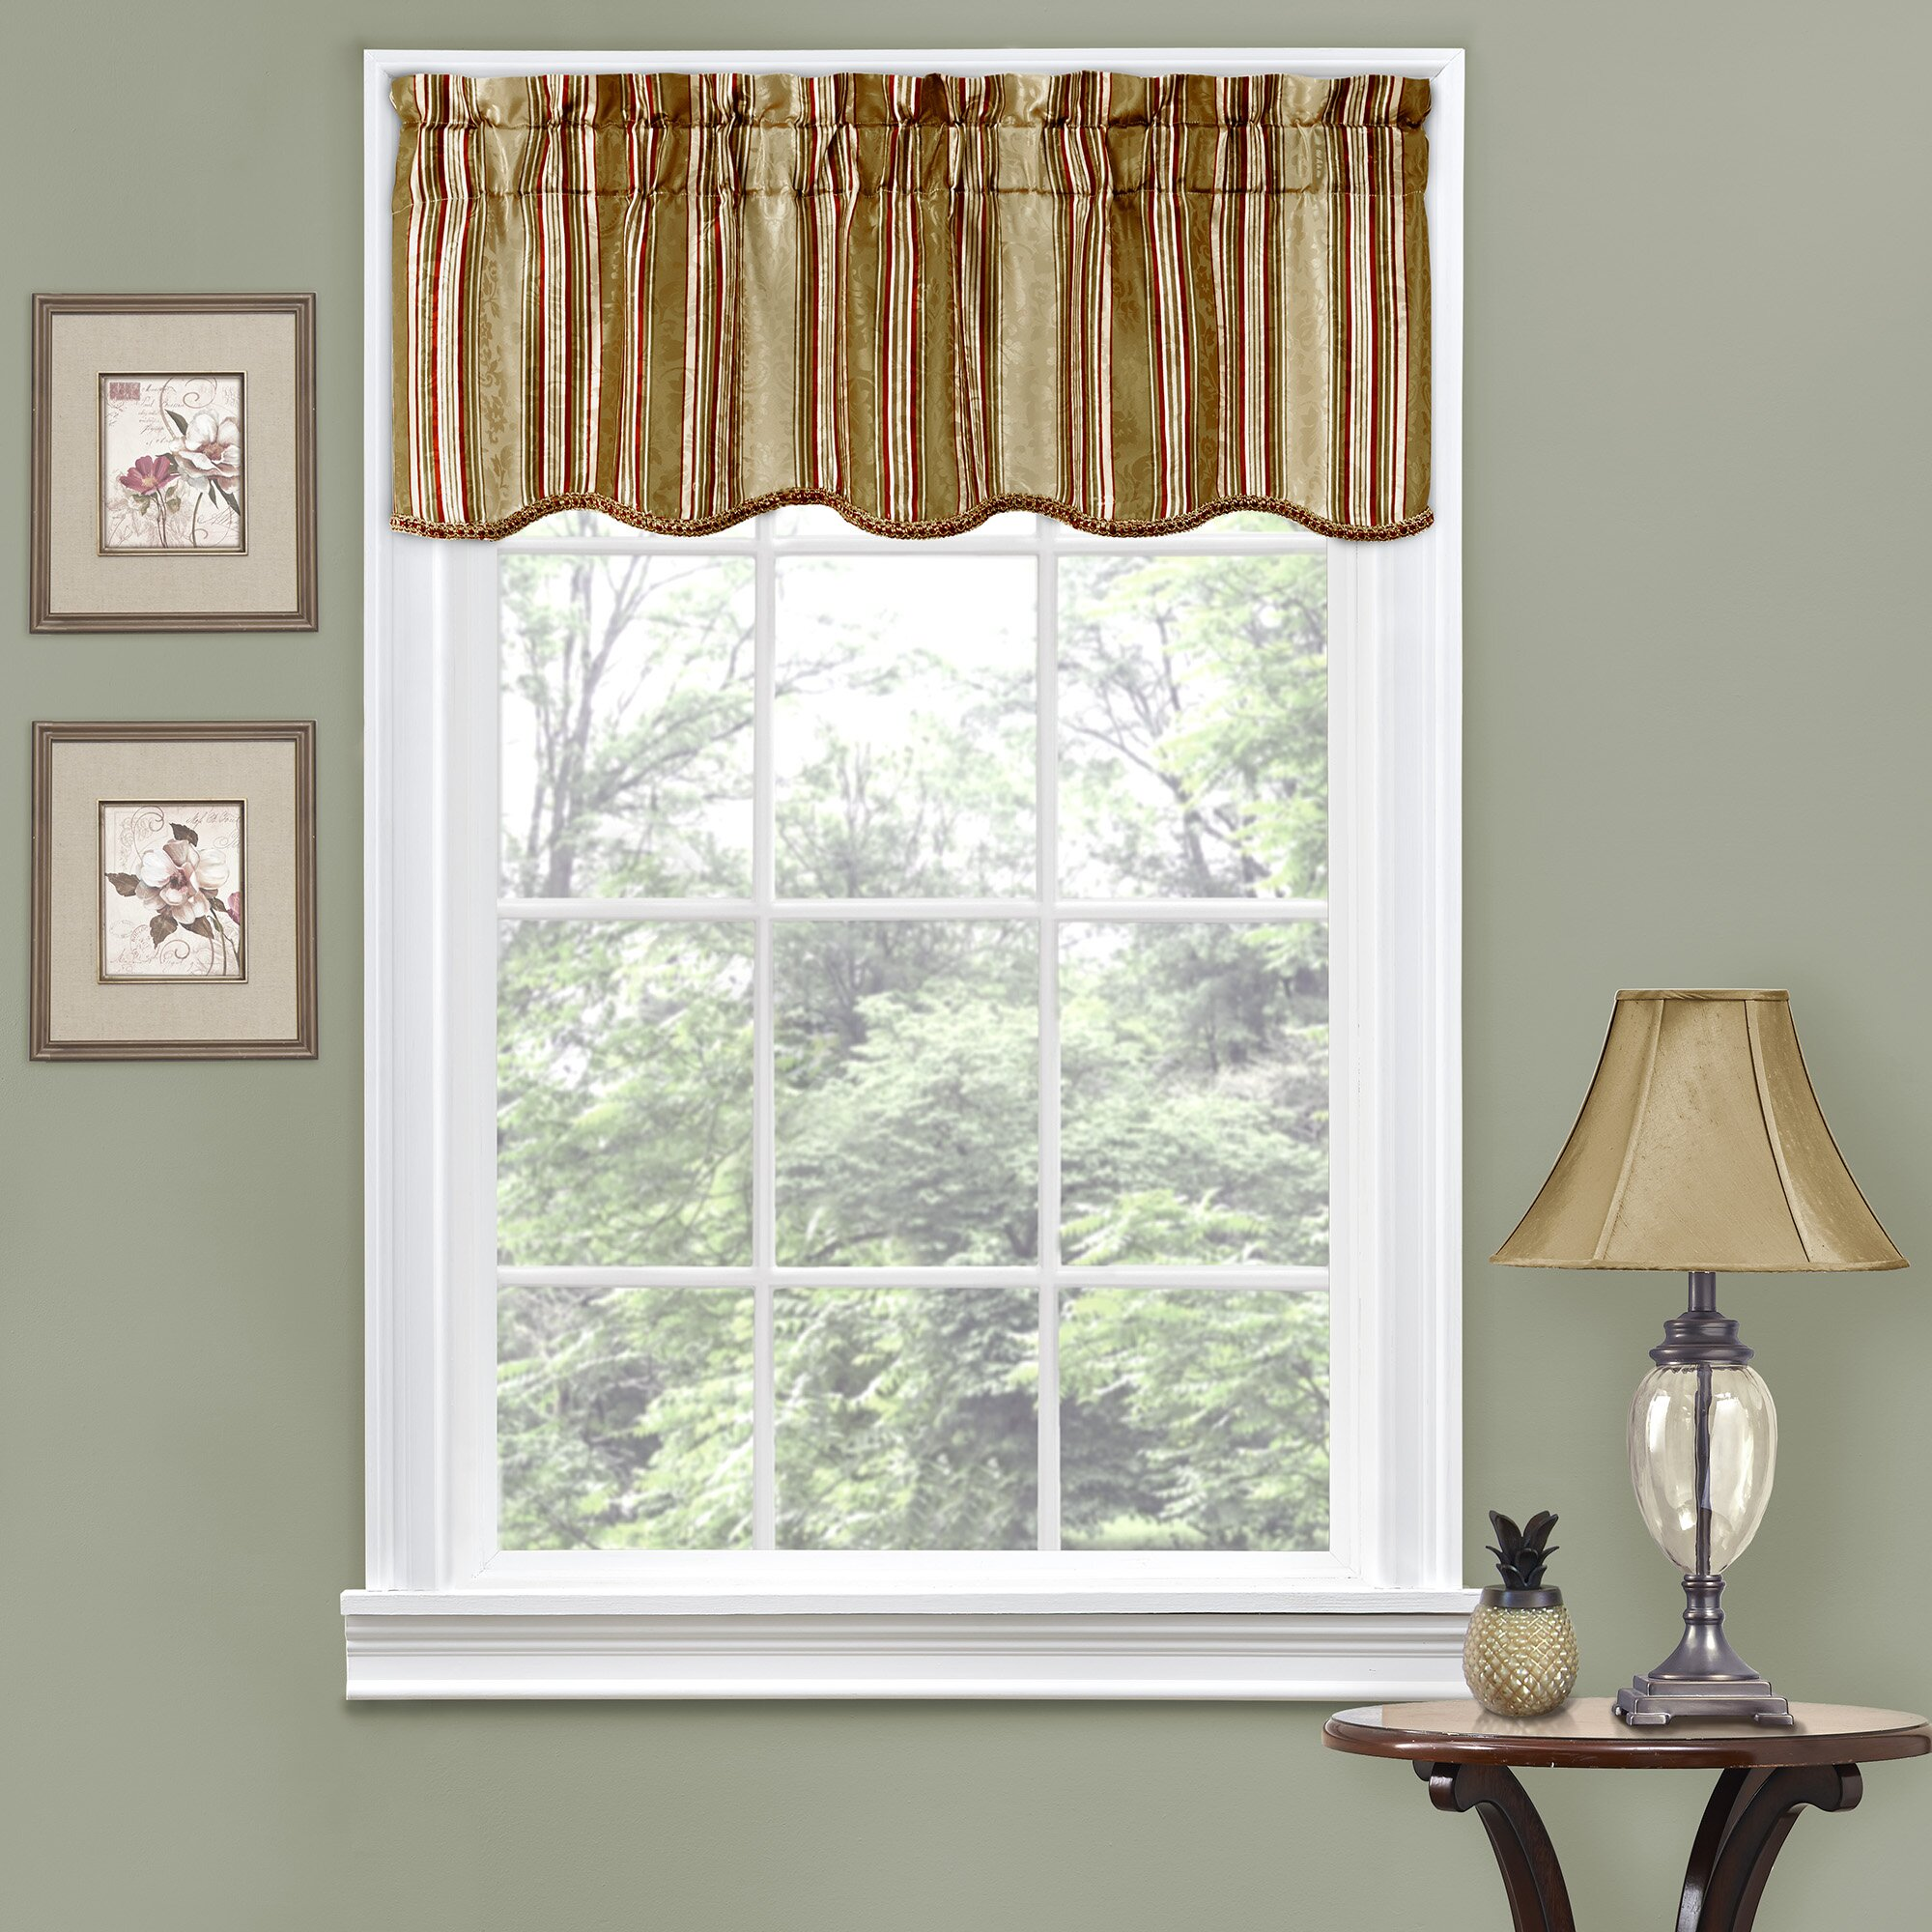 How To Hang Swag Curtains Free Image